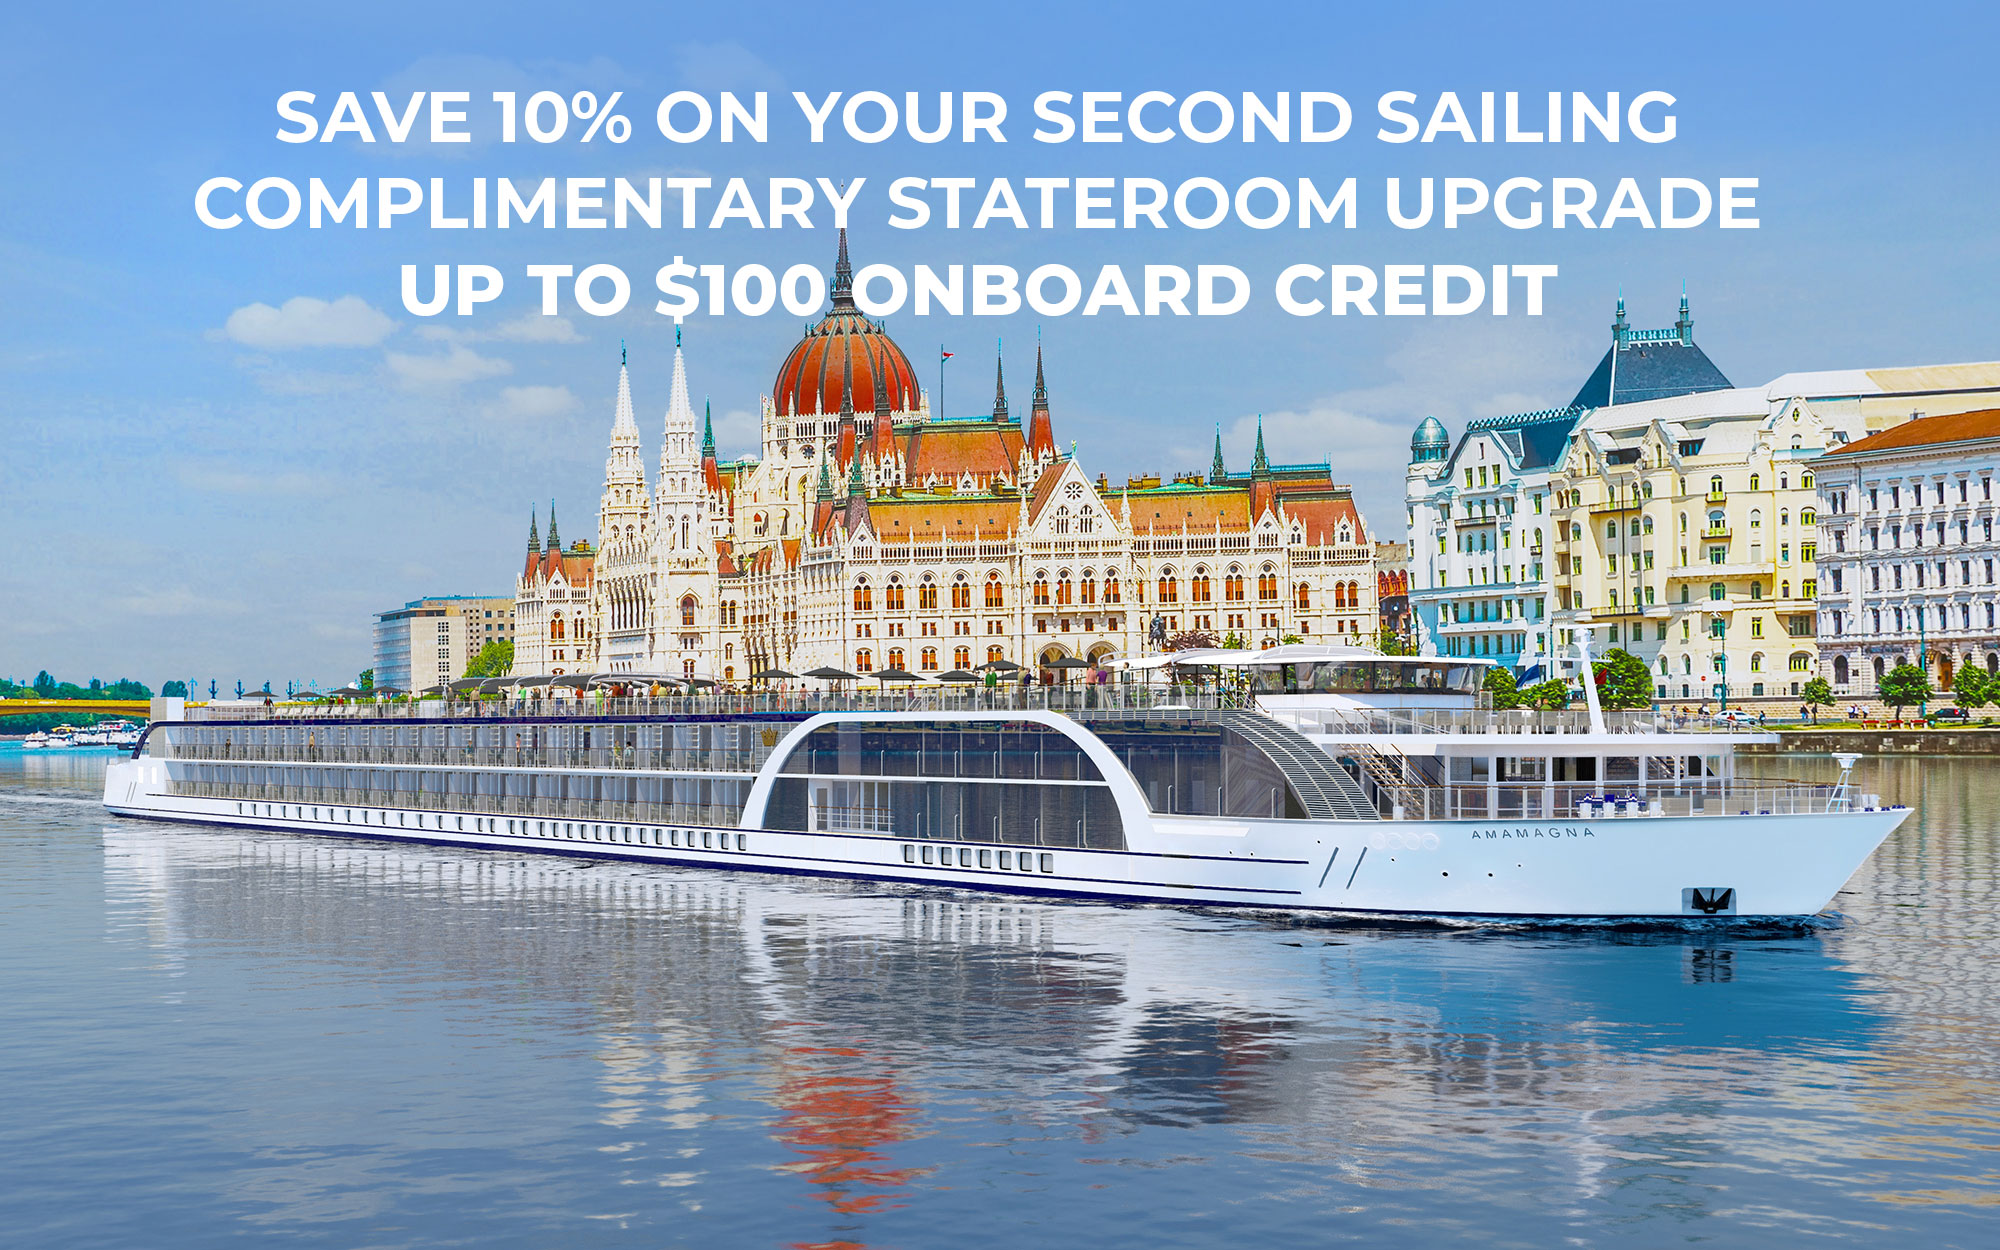 Save 10% on your second sailing, Complimentary Stateroom Upgrade, up to $100 onboard credit